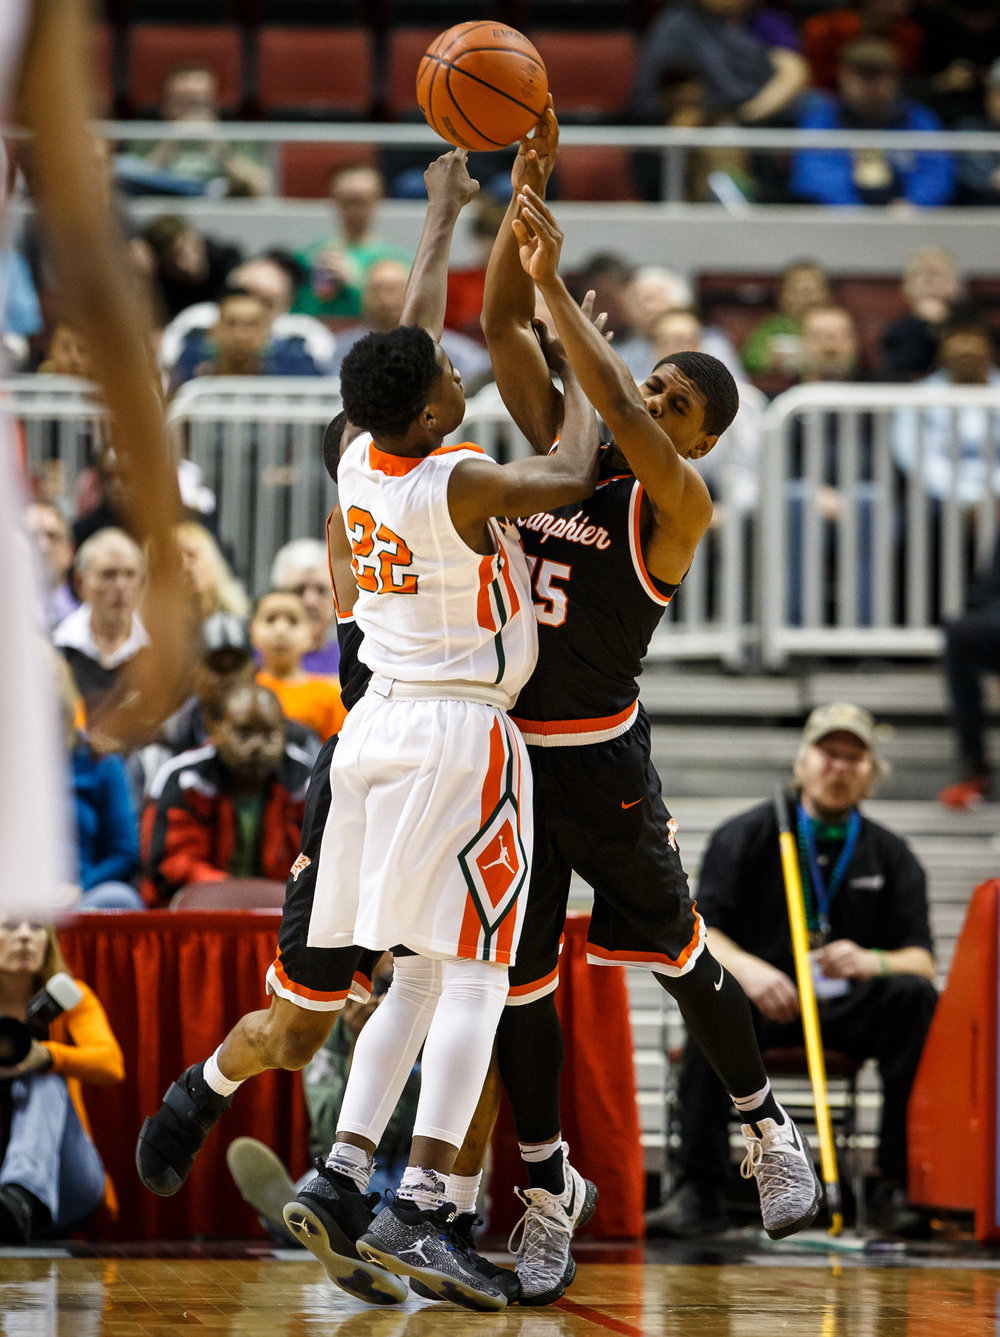 Lanphier's Stanley Morgan (15) collides with Chicago Morgan Park's Marcus Watson (22) going for a rebound in the second quarter during the semifinals of the IHSA Class 3A Basketball State Finals at Carver Arena, Friday, March 17, 2017, in Peoria, Ill. [Justin L. Fowler/The State Journal-Register]